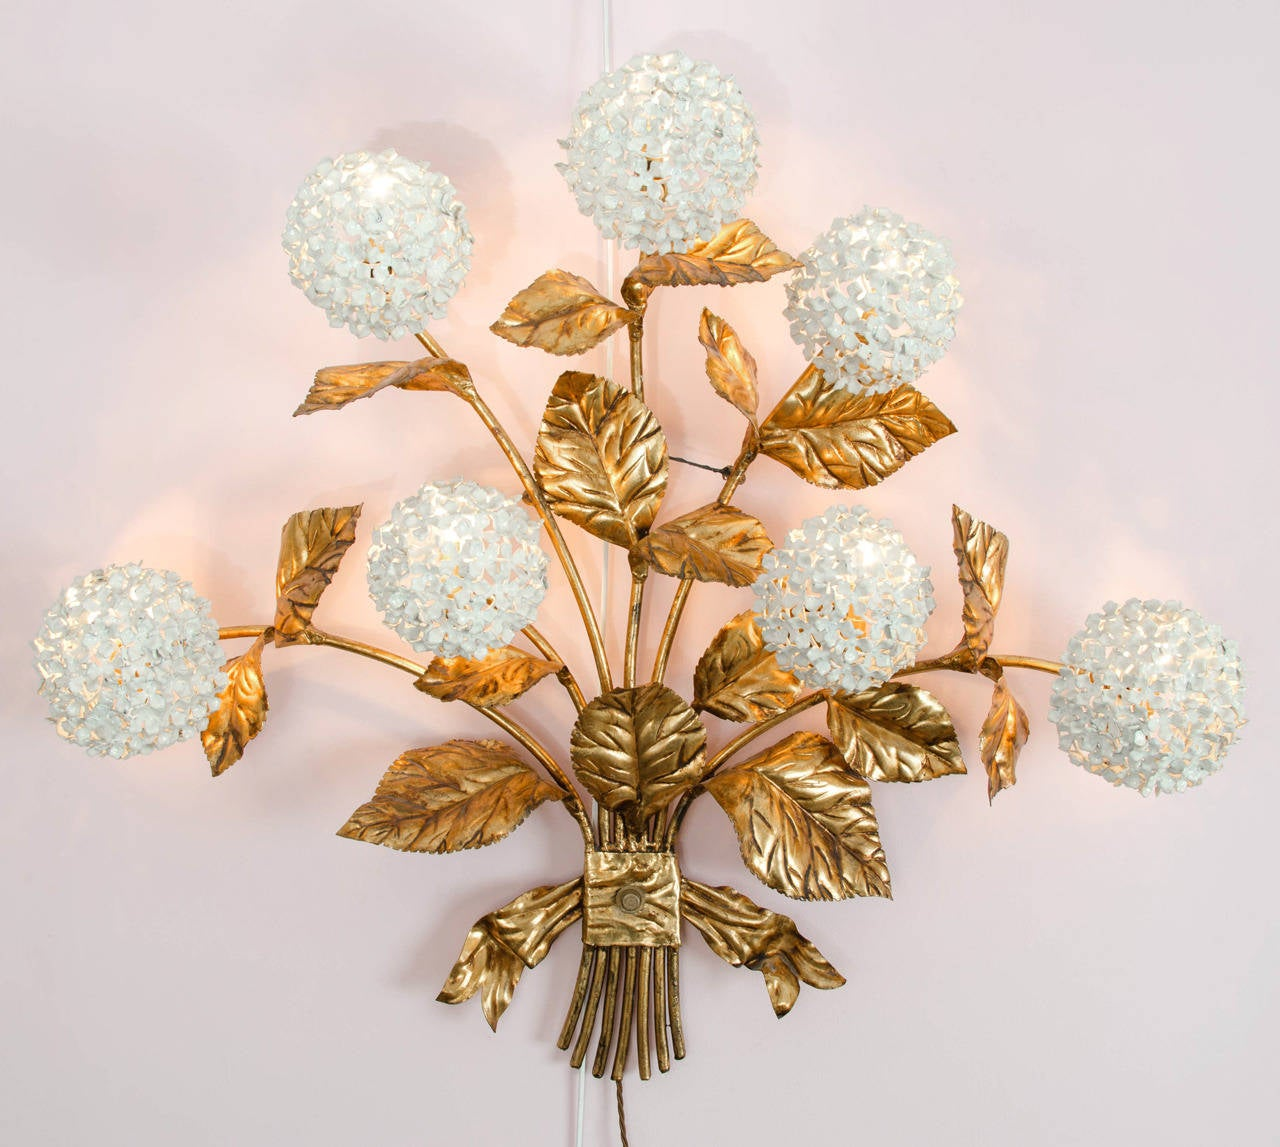 Rare American 1950s wall light in gilded brass with white enamel hydrangeas in the form of an ornate bouquet. An abundance of leaves with seven flowers in full bloom each giving a glamorous diffused light. Matching standard lamp and wall light